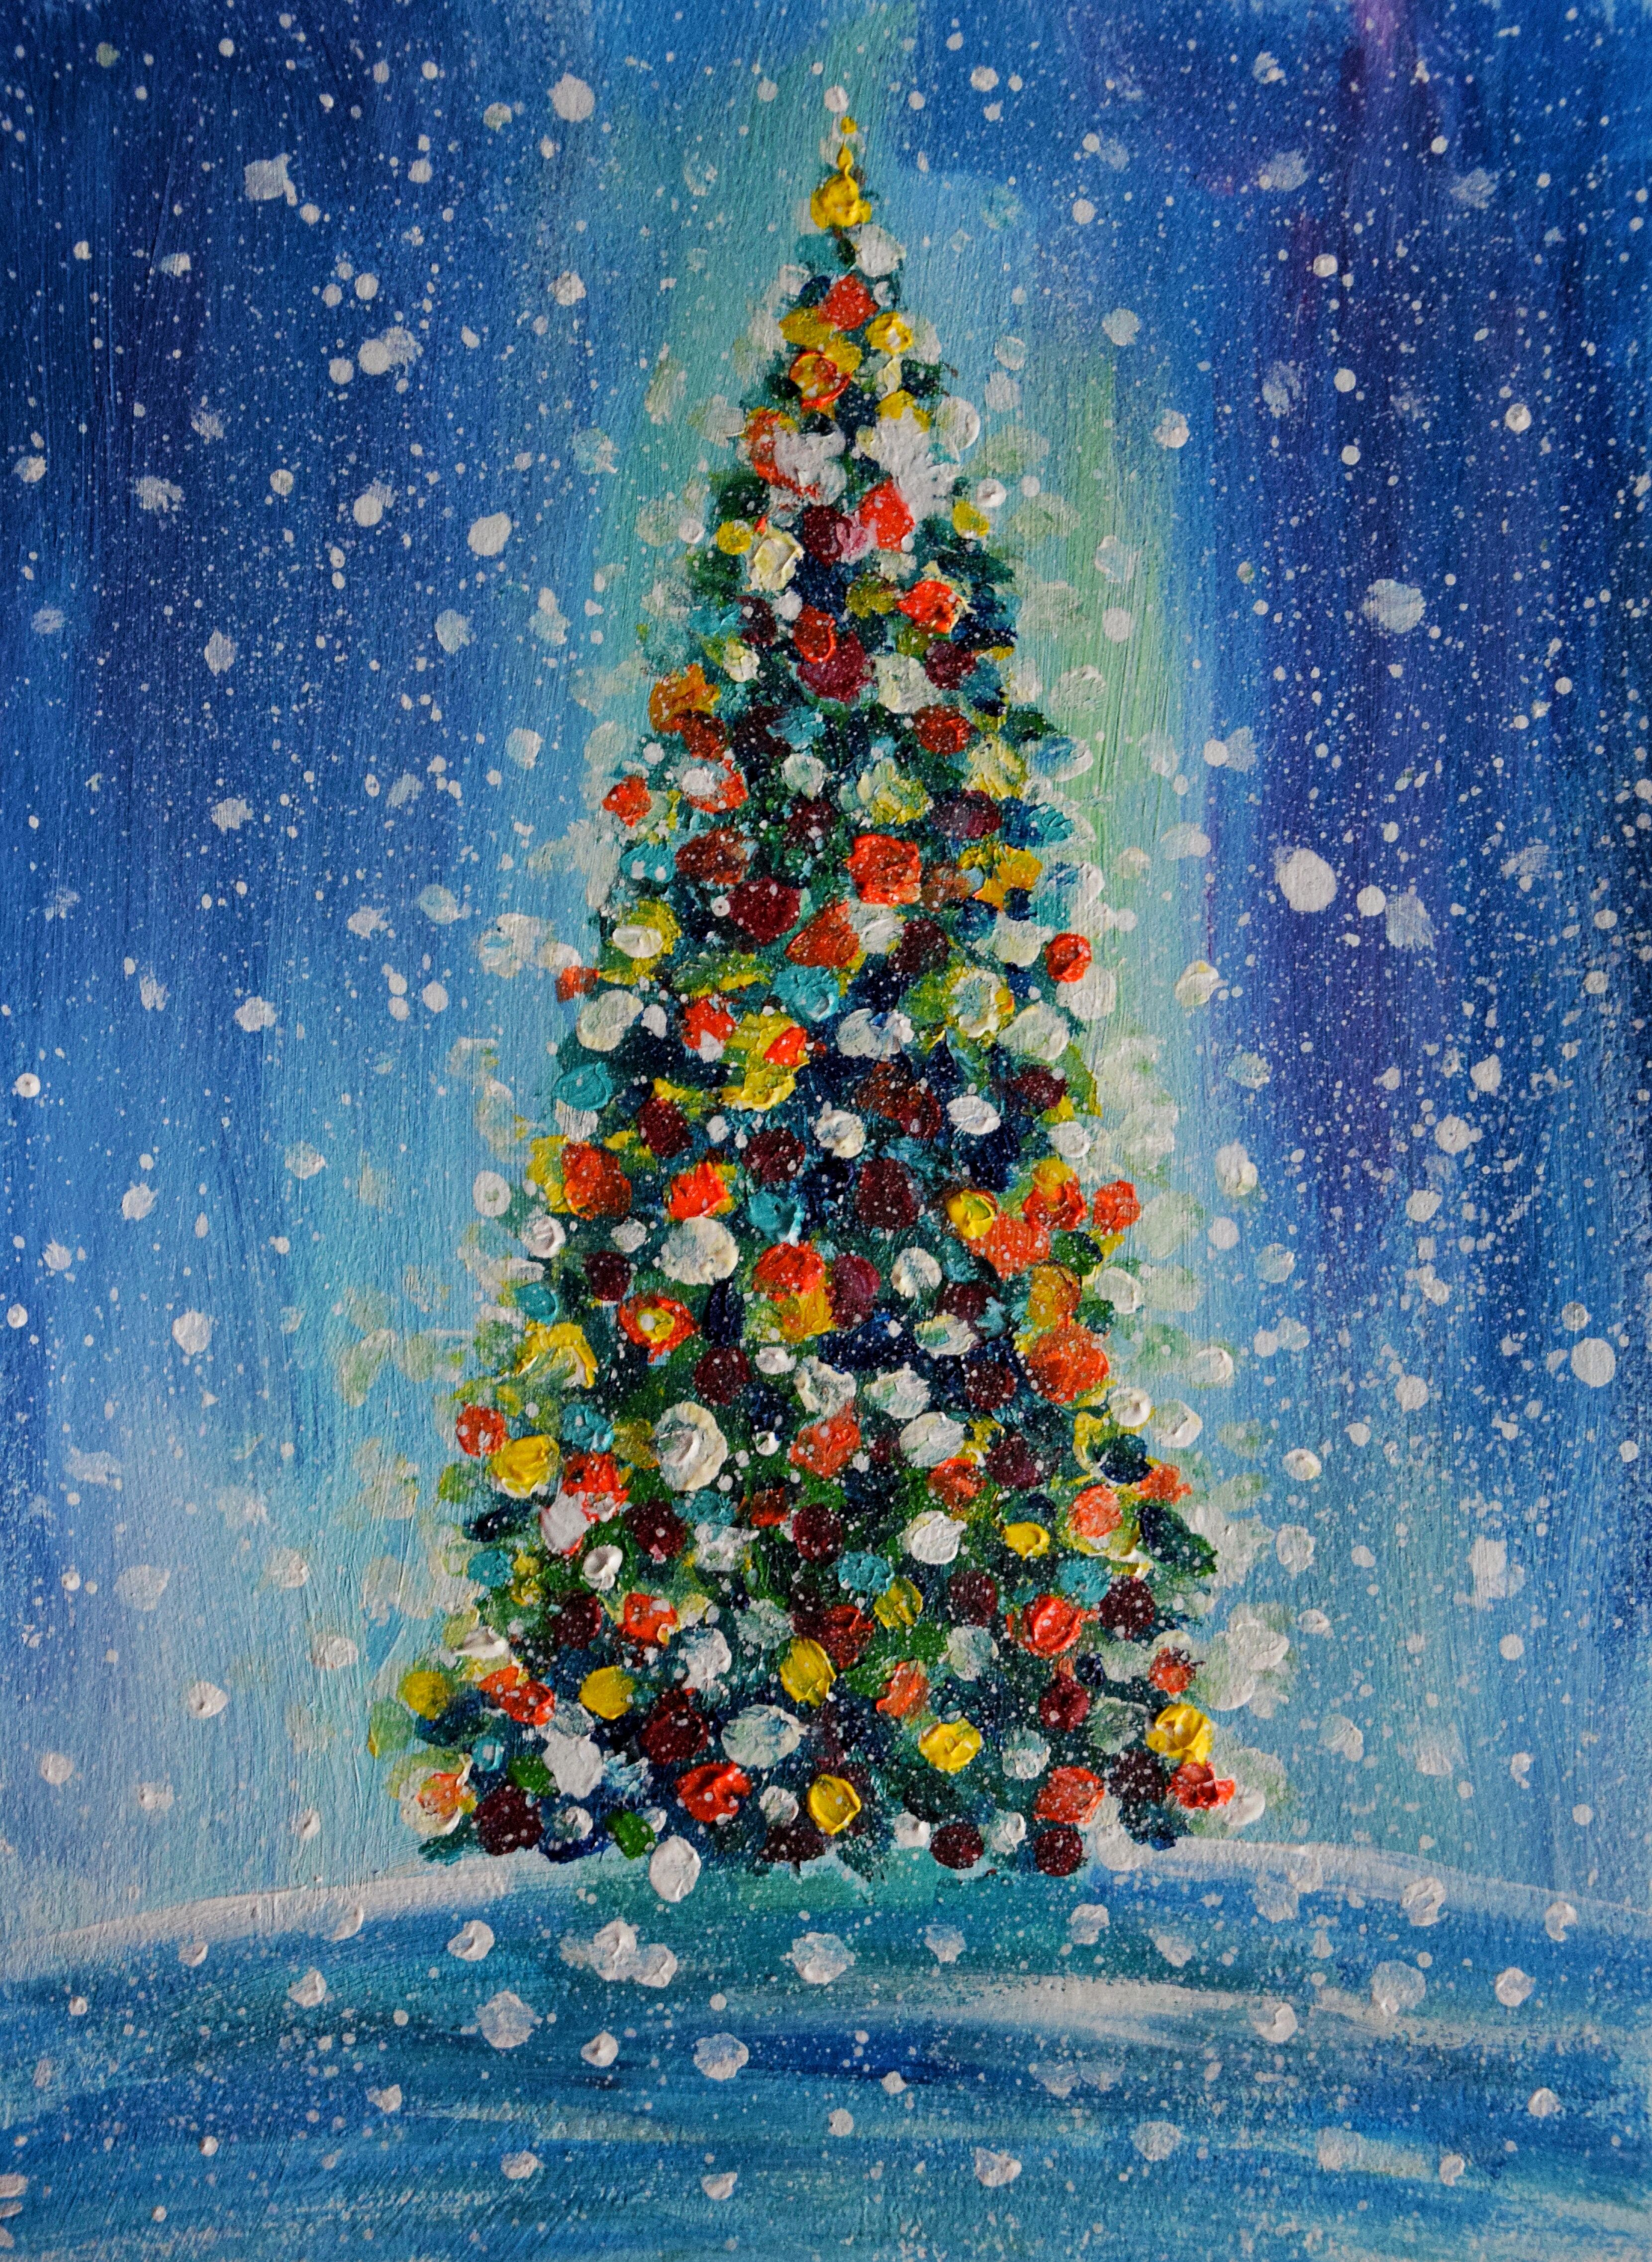 Christmas Tree Original Acrylic Painting New Year Pine Tree Picture Winter Snow Landscape Tree Painting Christmas Art Acrylic Painting On Paper